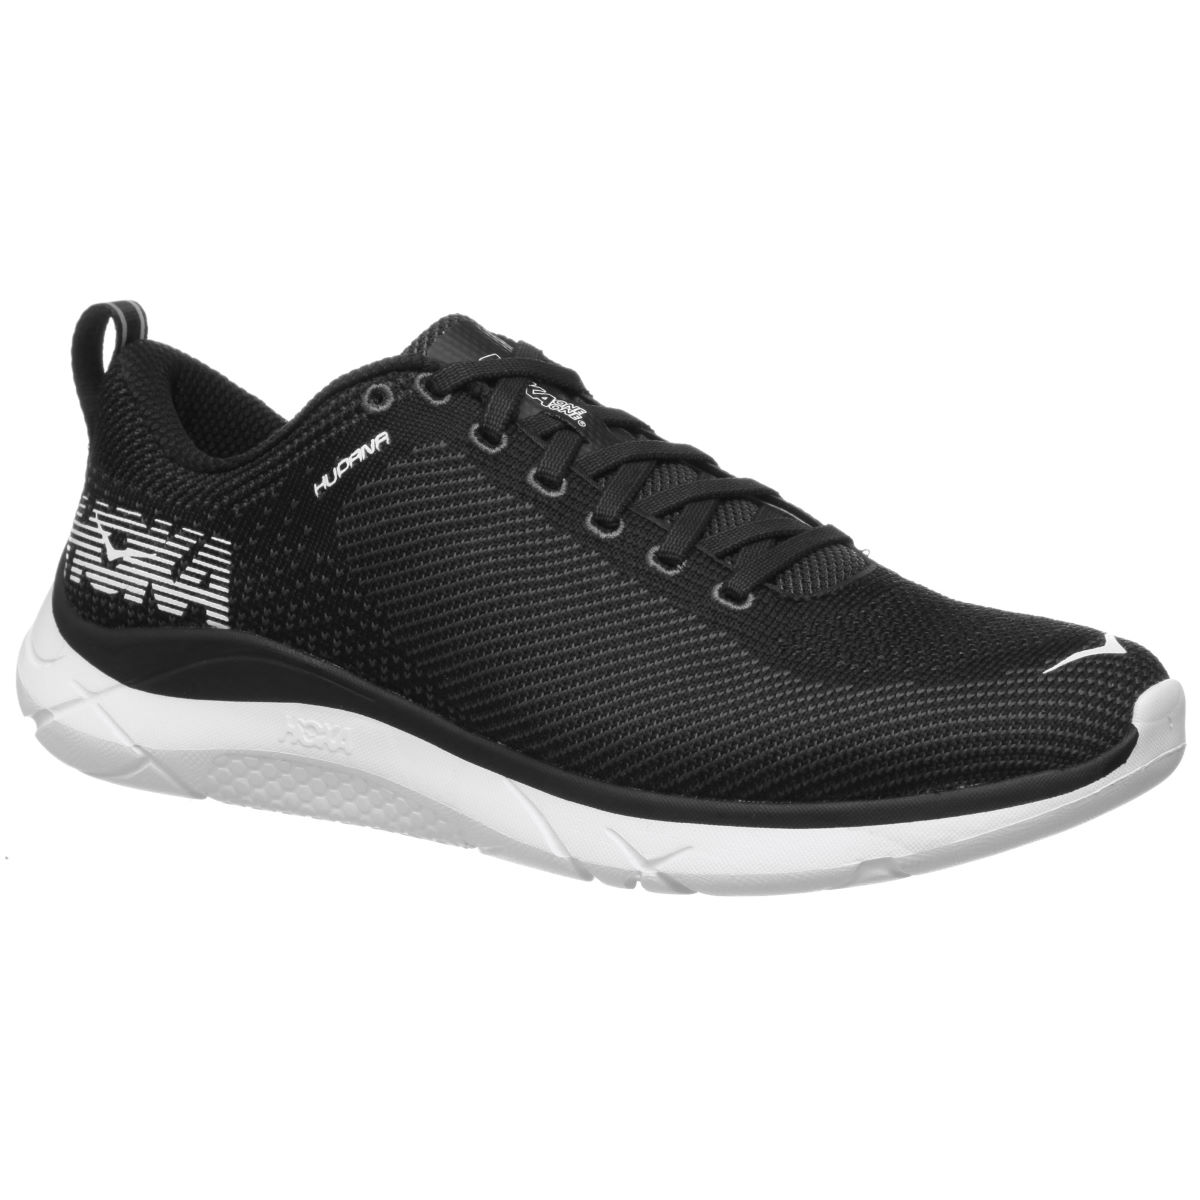 Chaussures Hoka One One Hupana - UK 7.5 Black/Dark Shadow